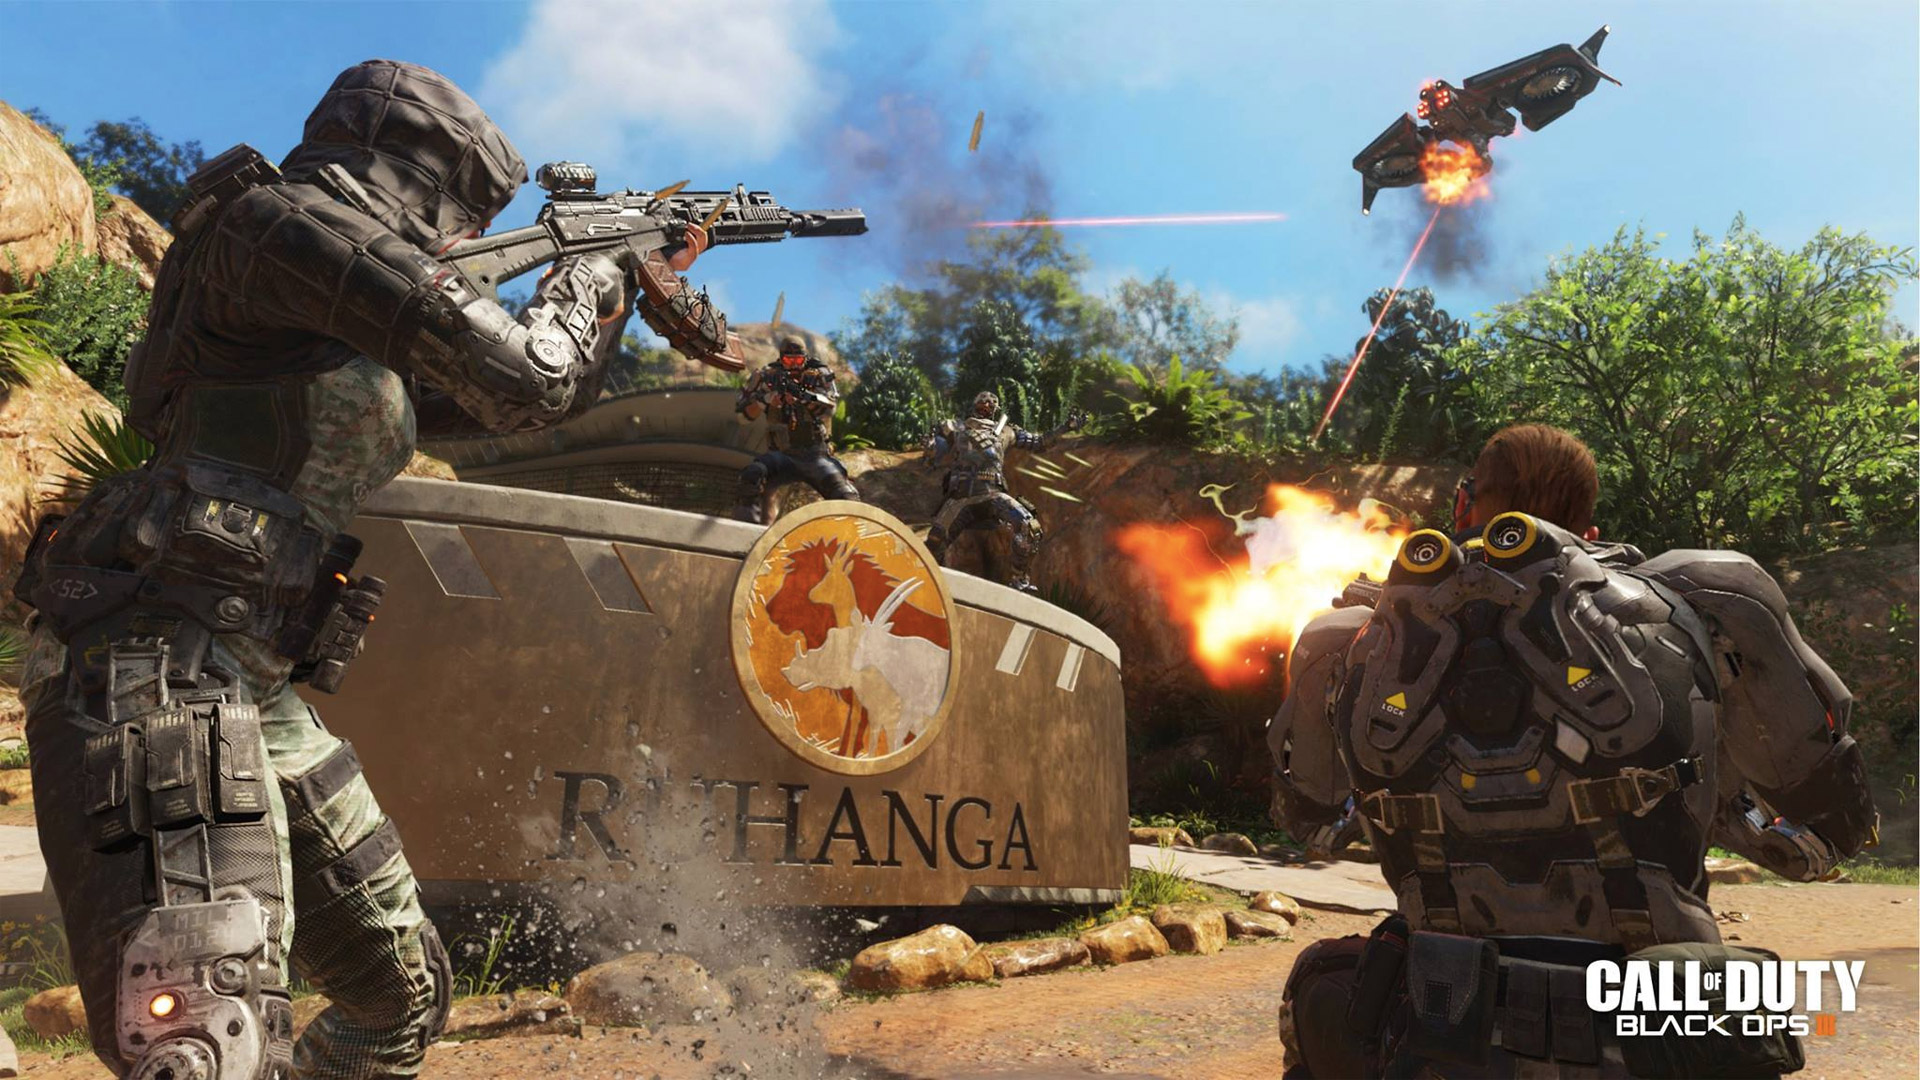 Call of Duty: Black Ops 3 digital versions for Xbox pulled from Xbox Games Store, Amazon